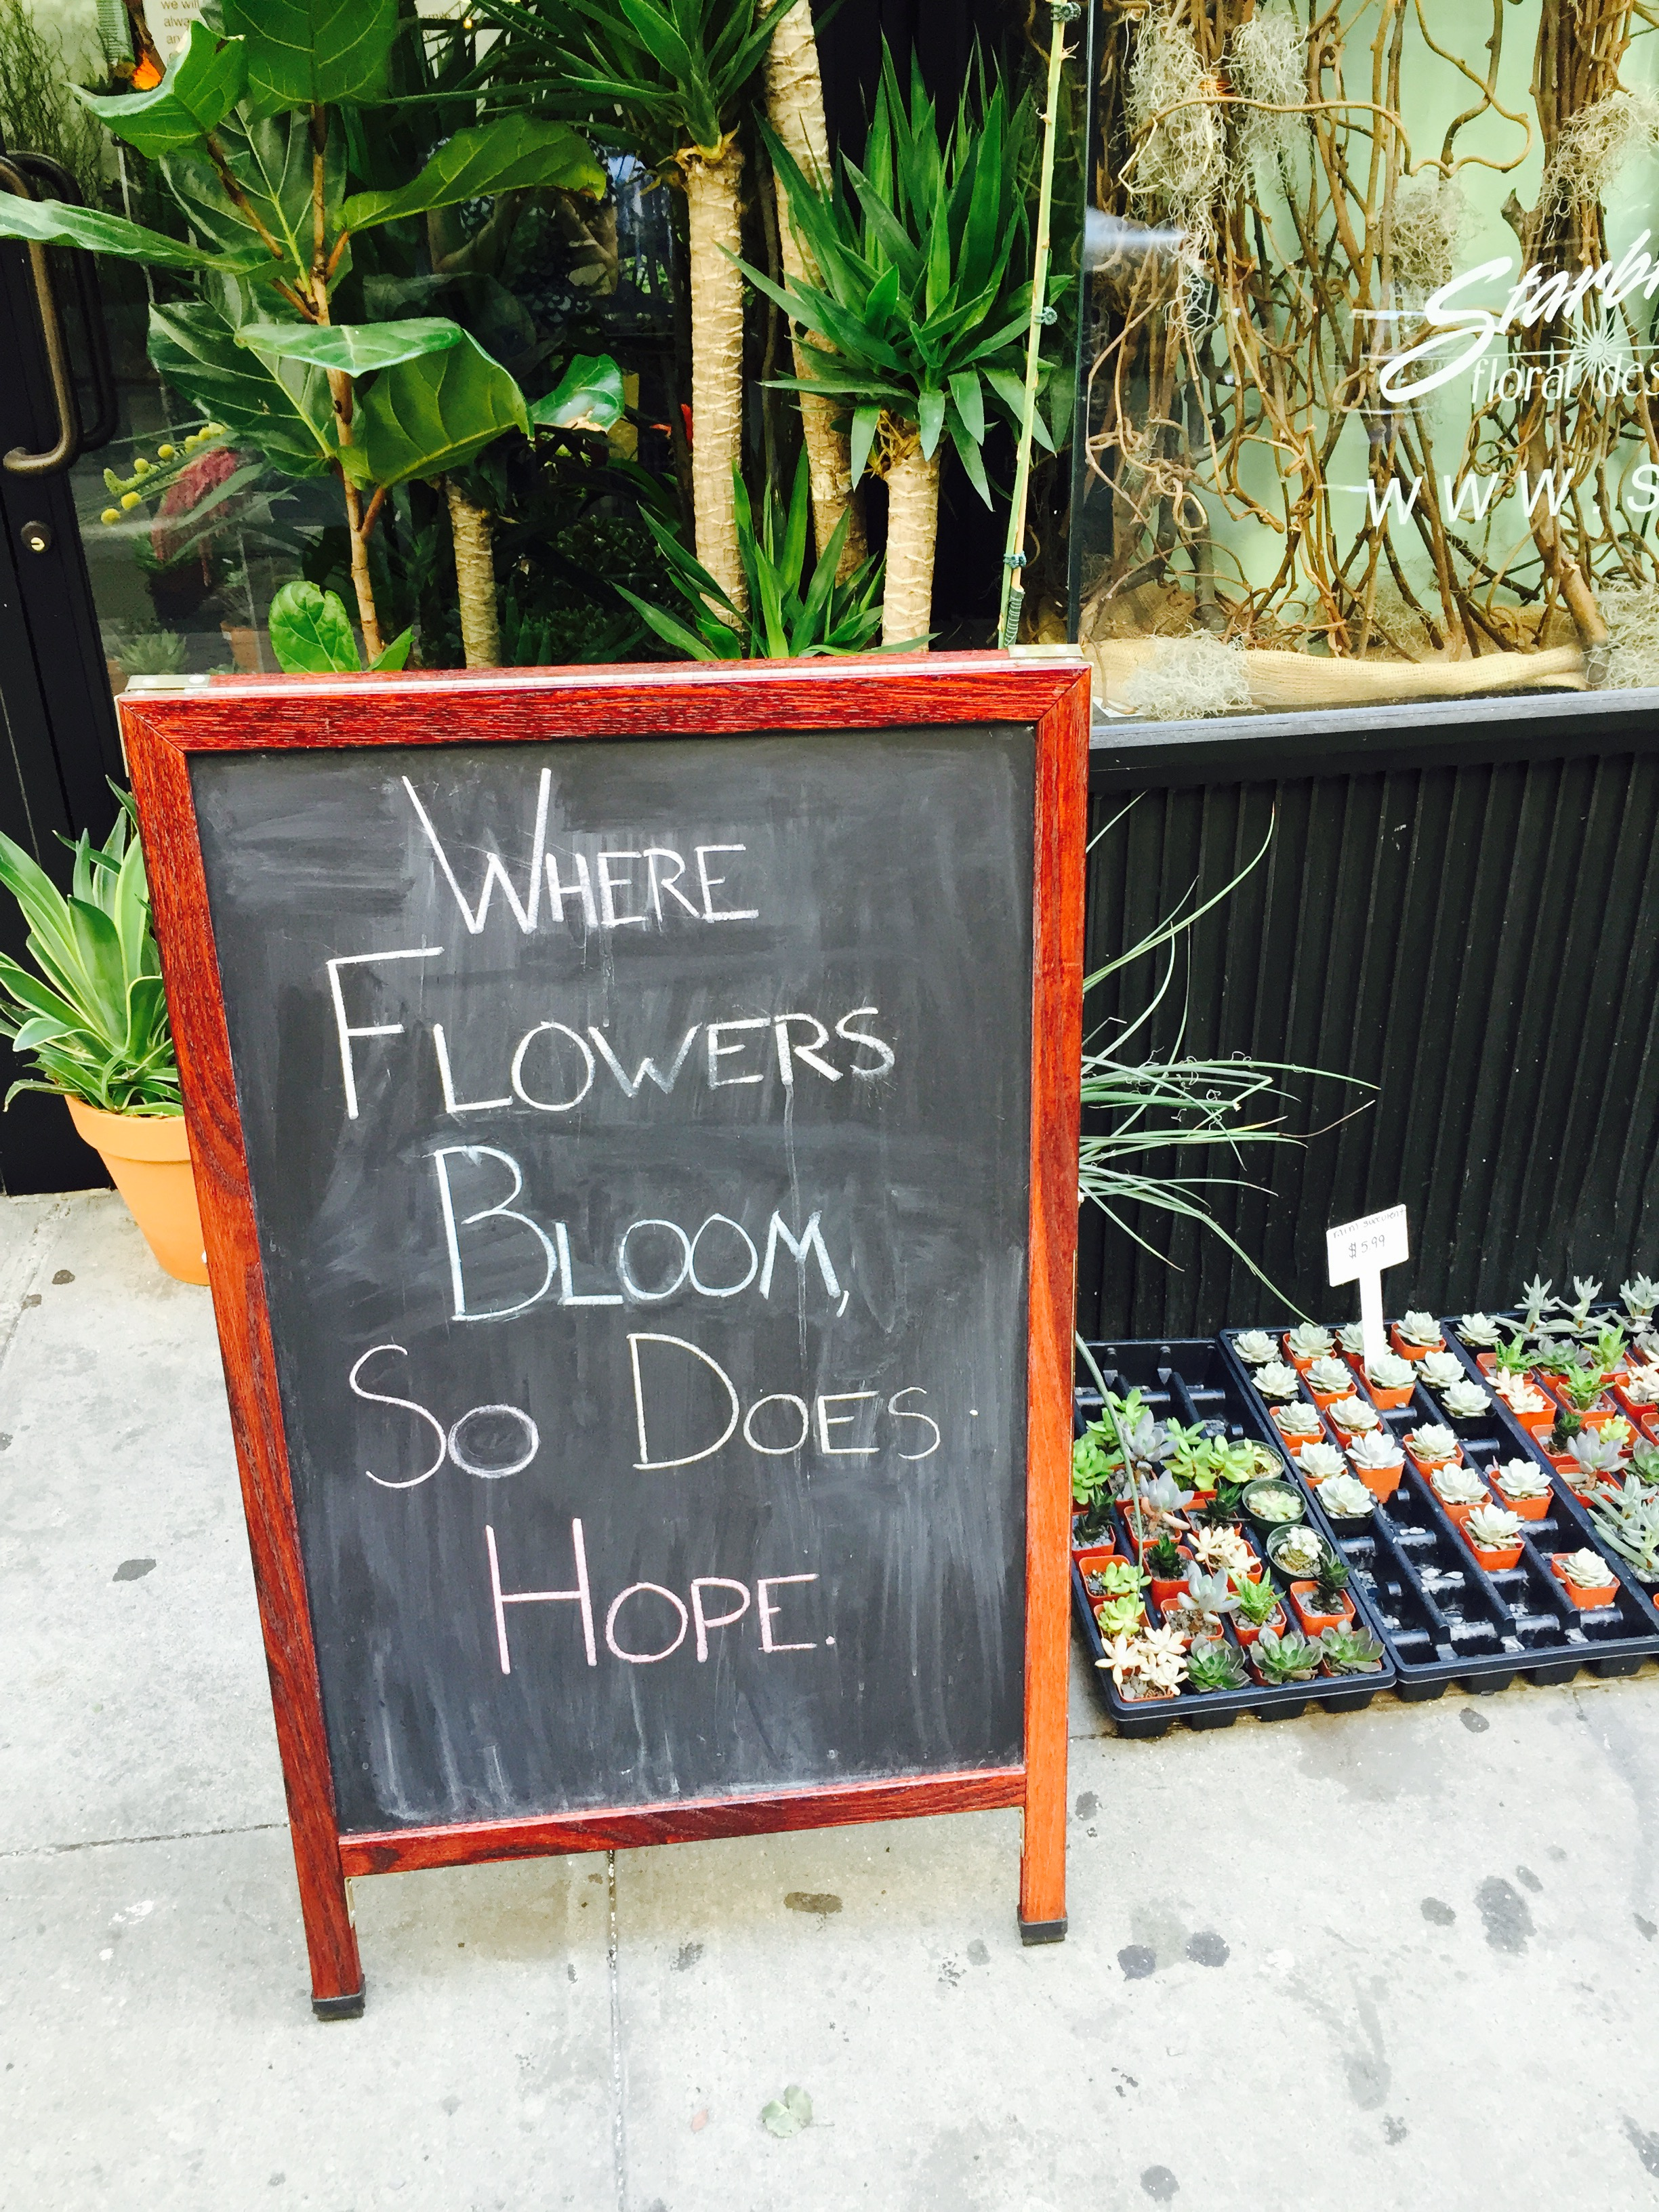 Were flowers bloom so does hope.